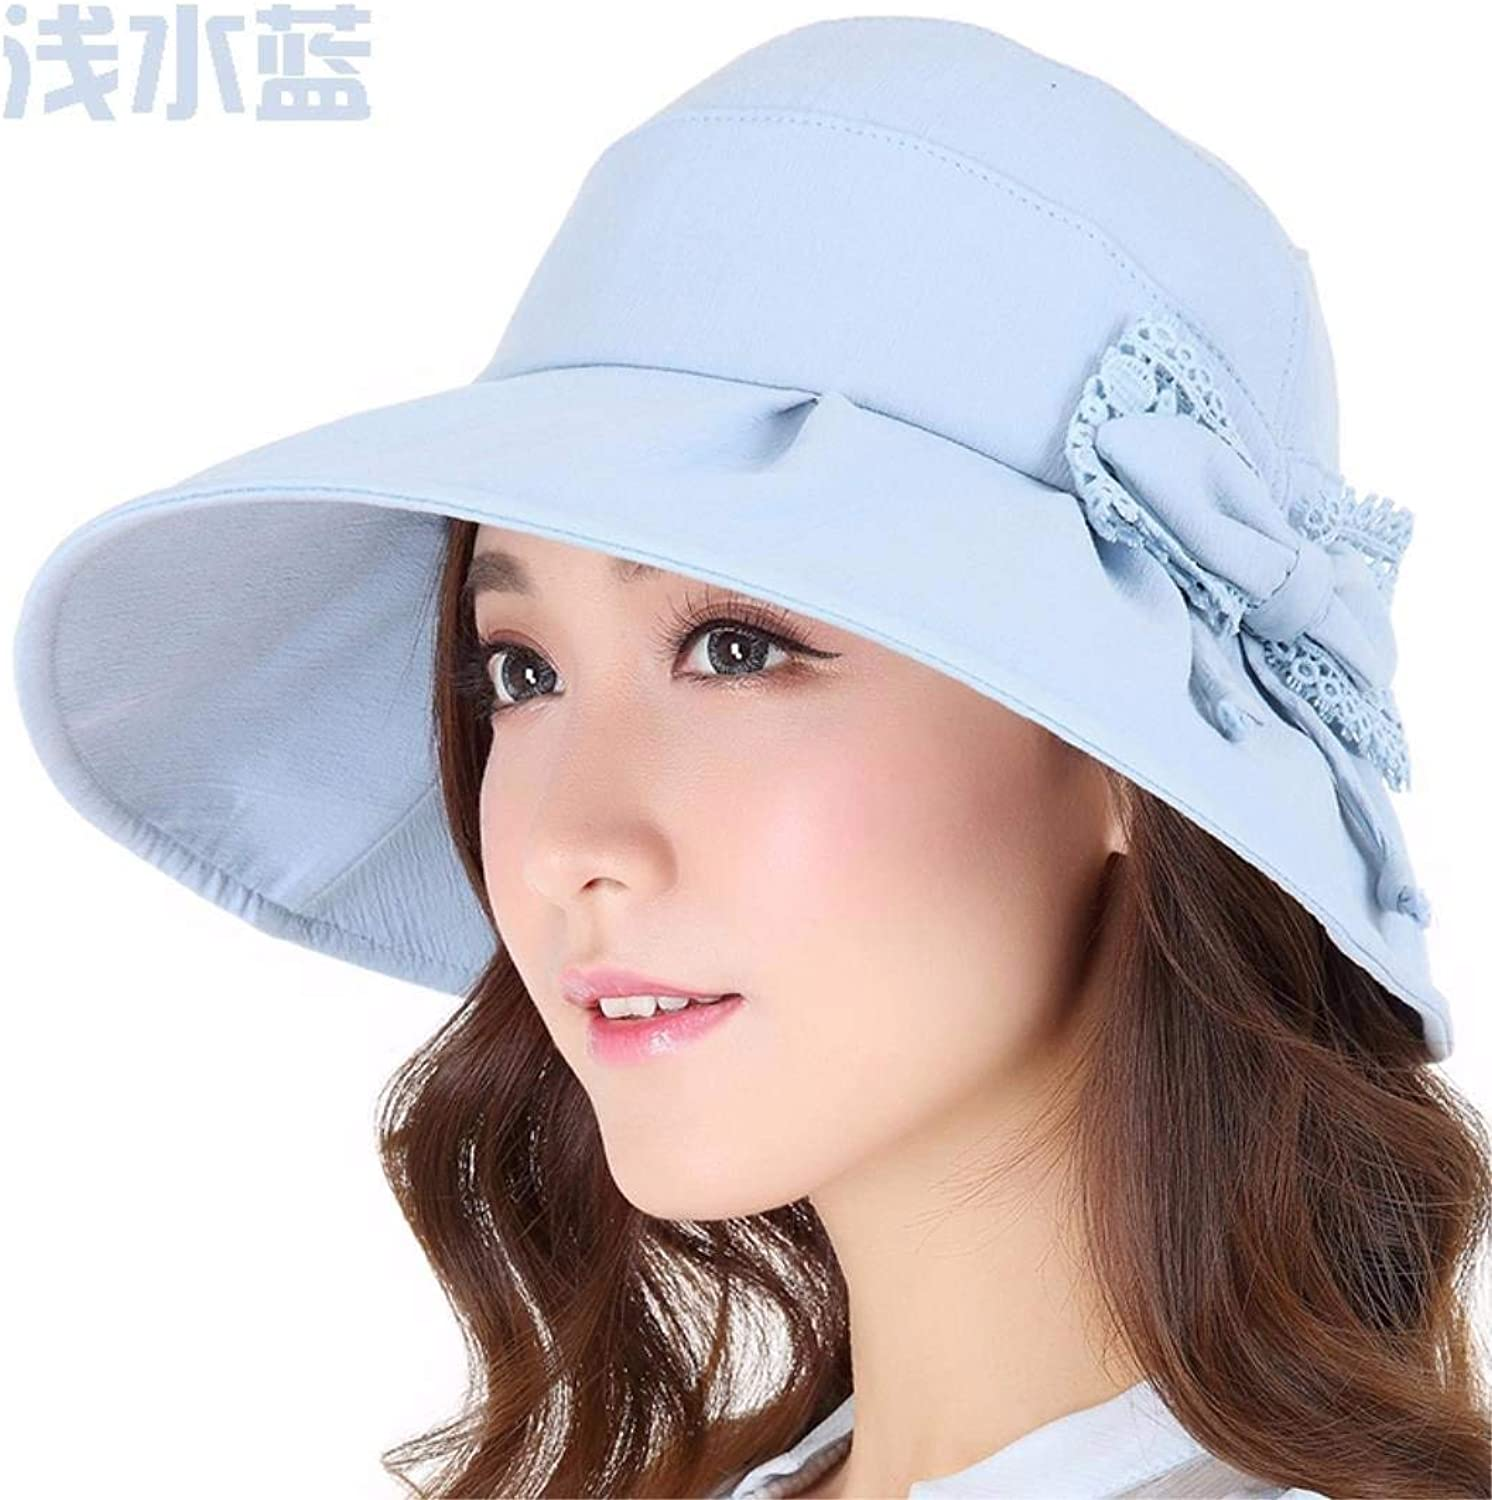 Chuiqingnet Elegant and relaxed, summer hat visor female cycling hats new spring and summer.